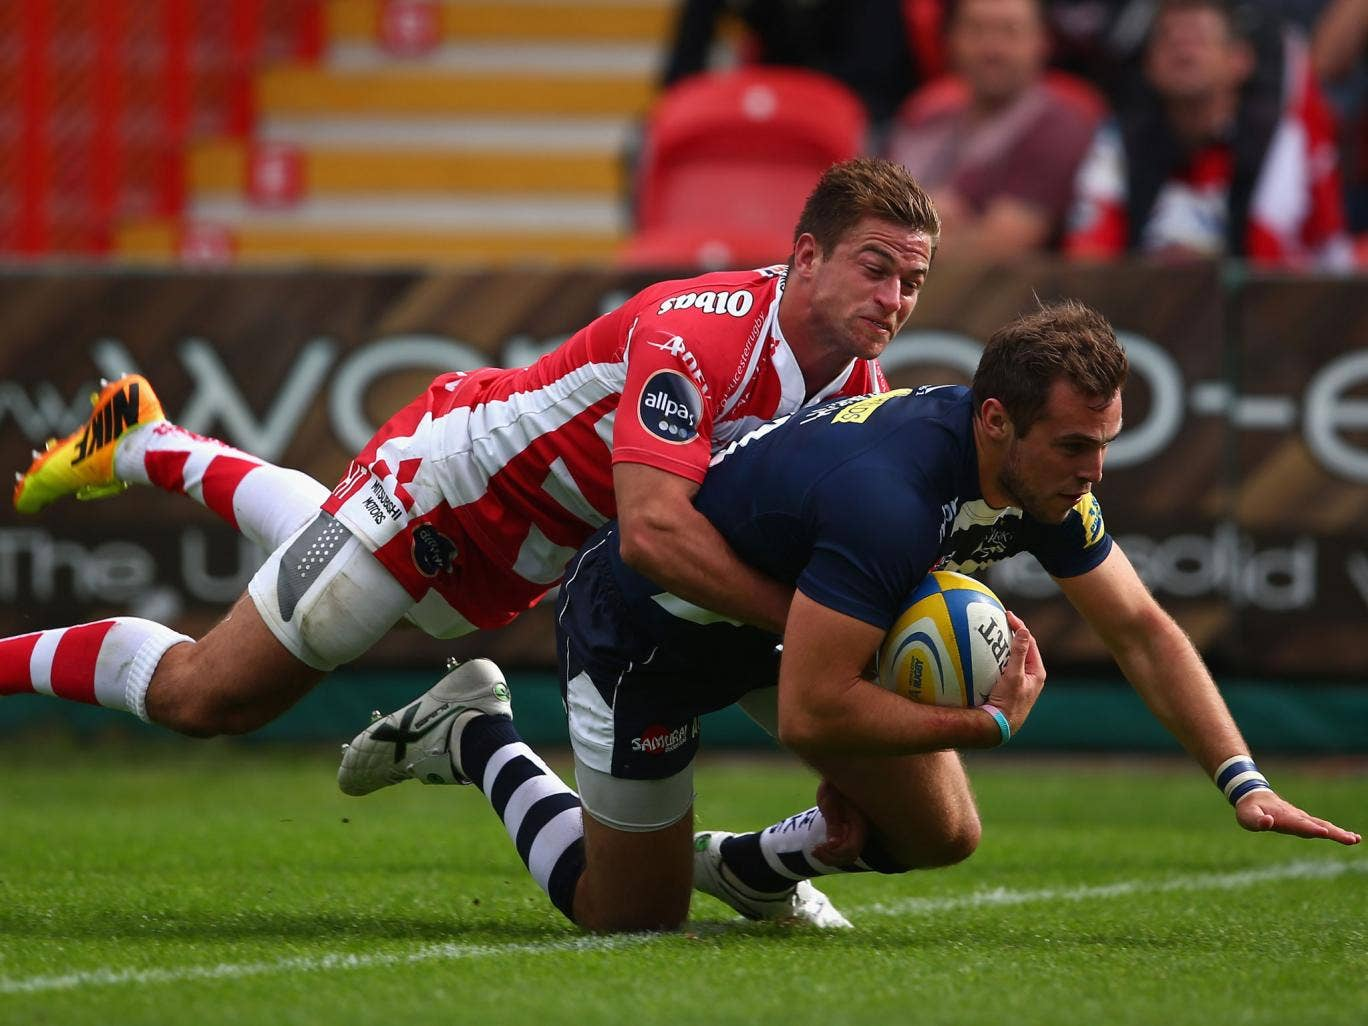 Andy Forsyth crosses for Sale to help them to a win at Gloucester